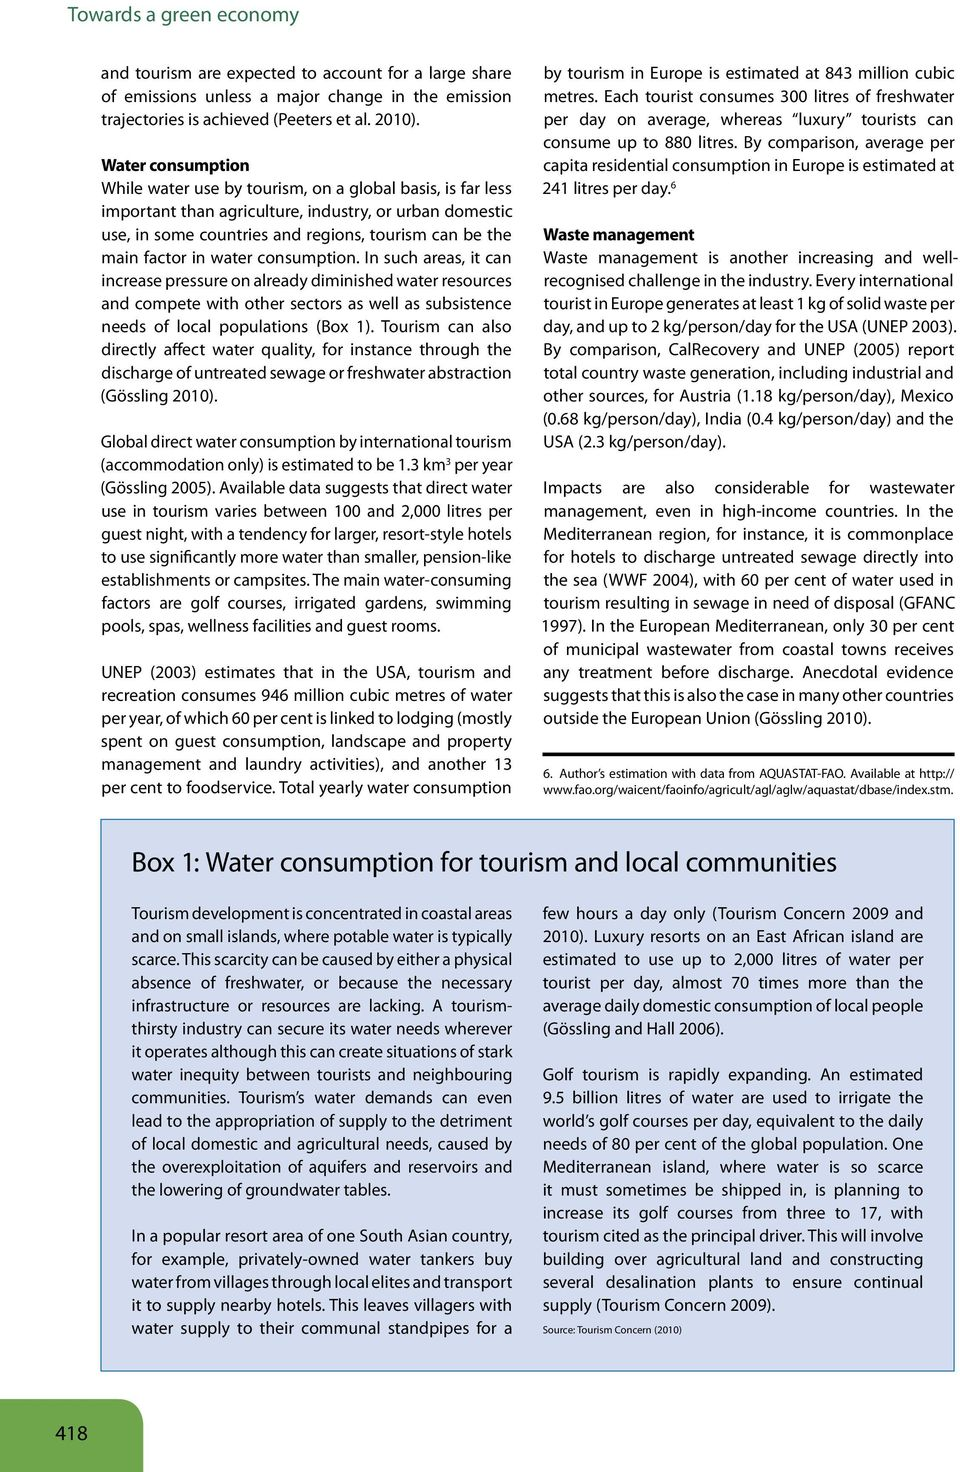 in water consumption. In such areas, it can increase pressure on already diminished water resources and compete with other sectors as well as subsistence needs of local populations (Box 1).